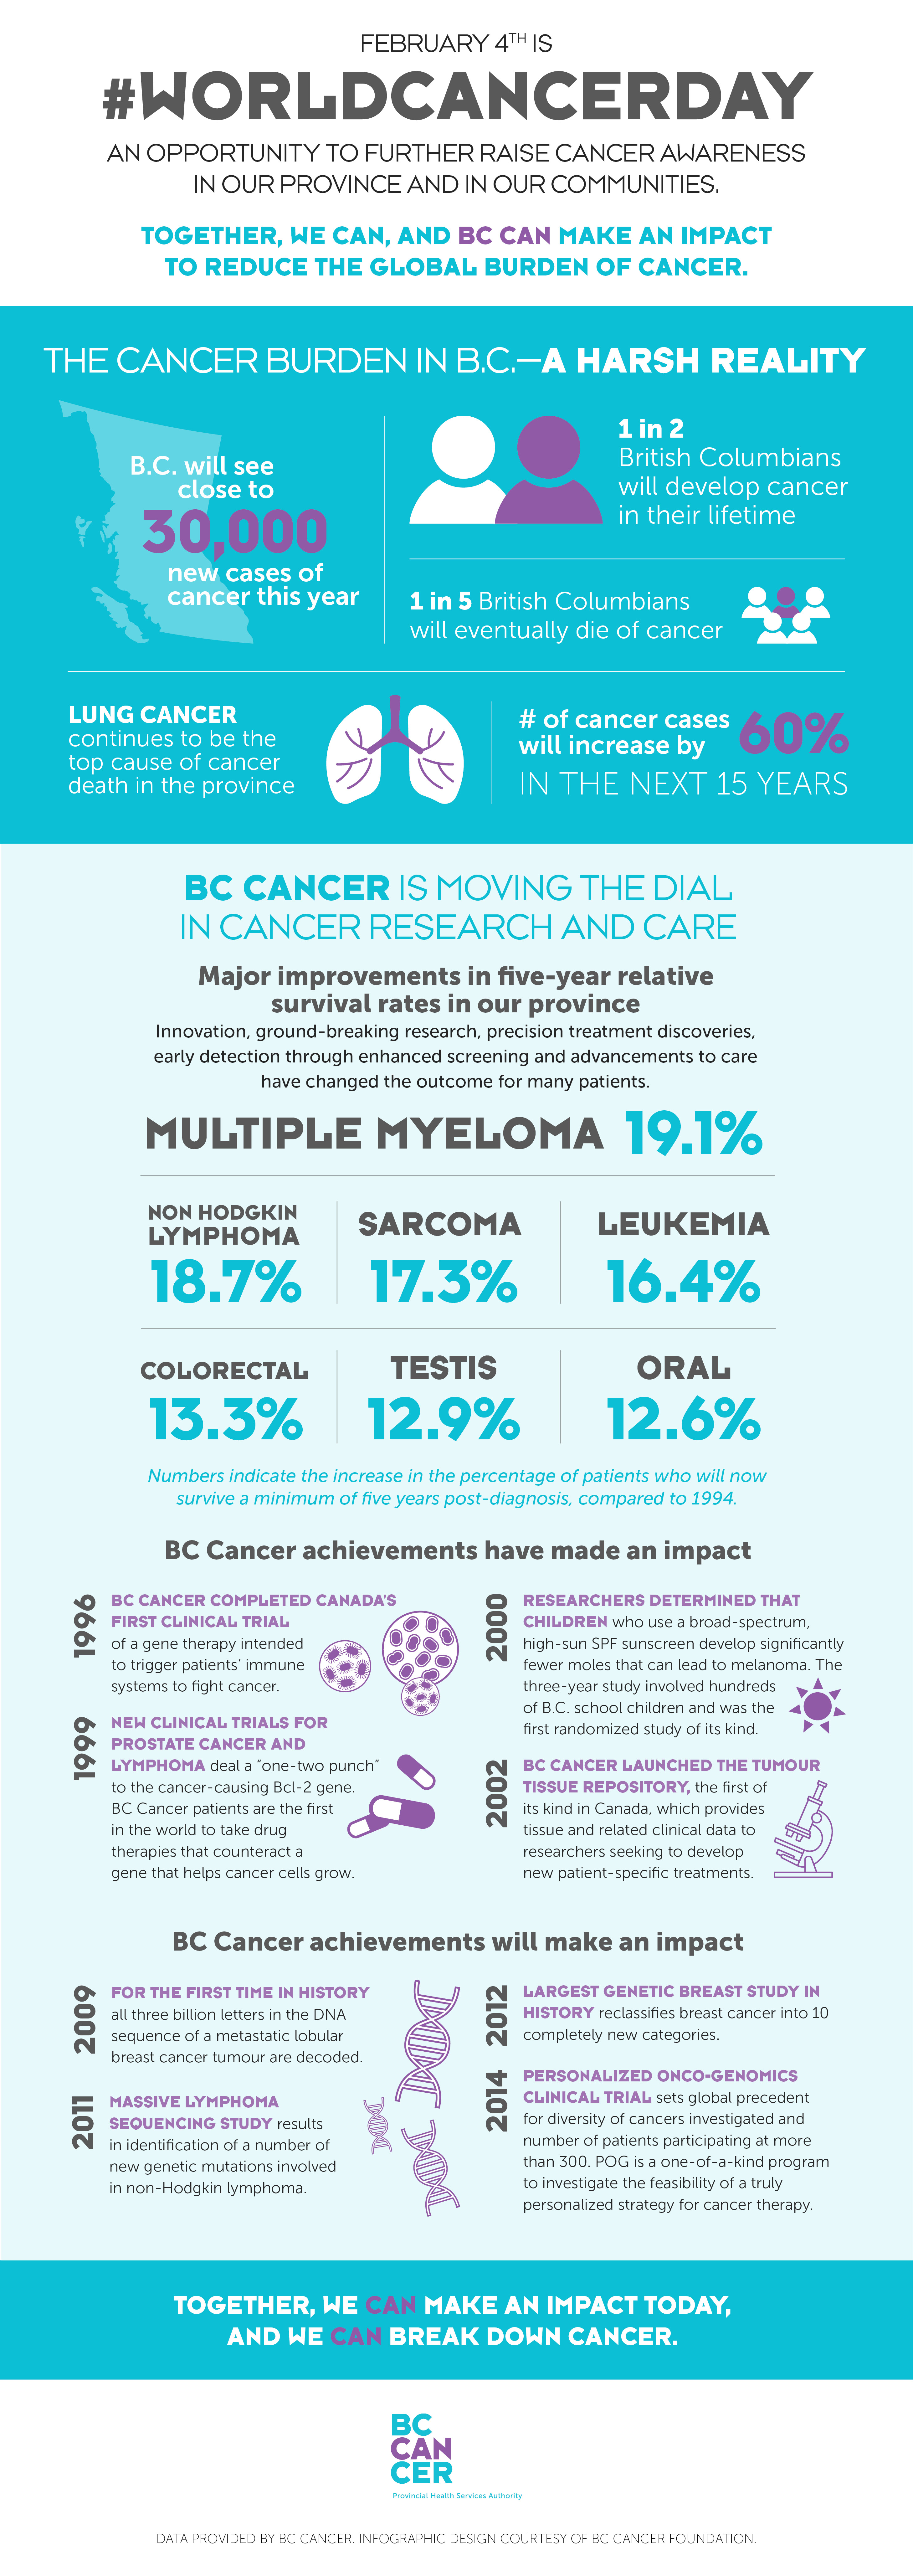 BCCancer-WorldCancerDay-2018-FINAL-FEB1.jpg